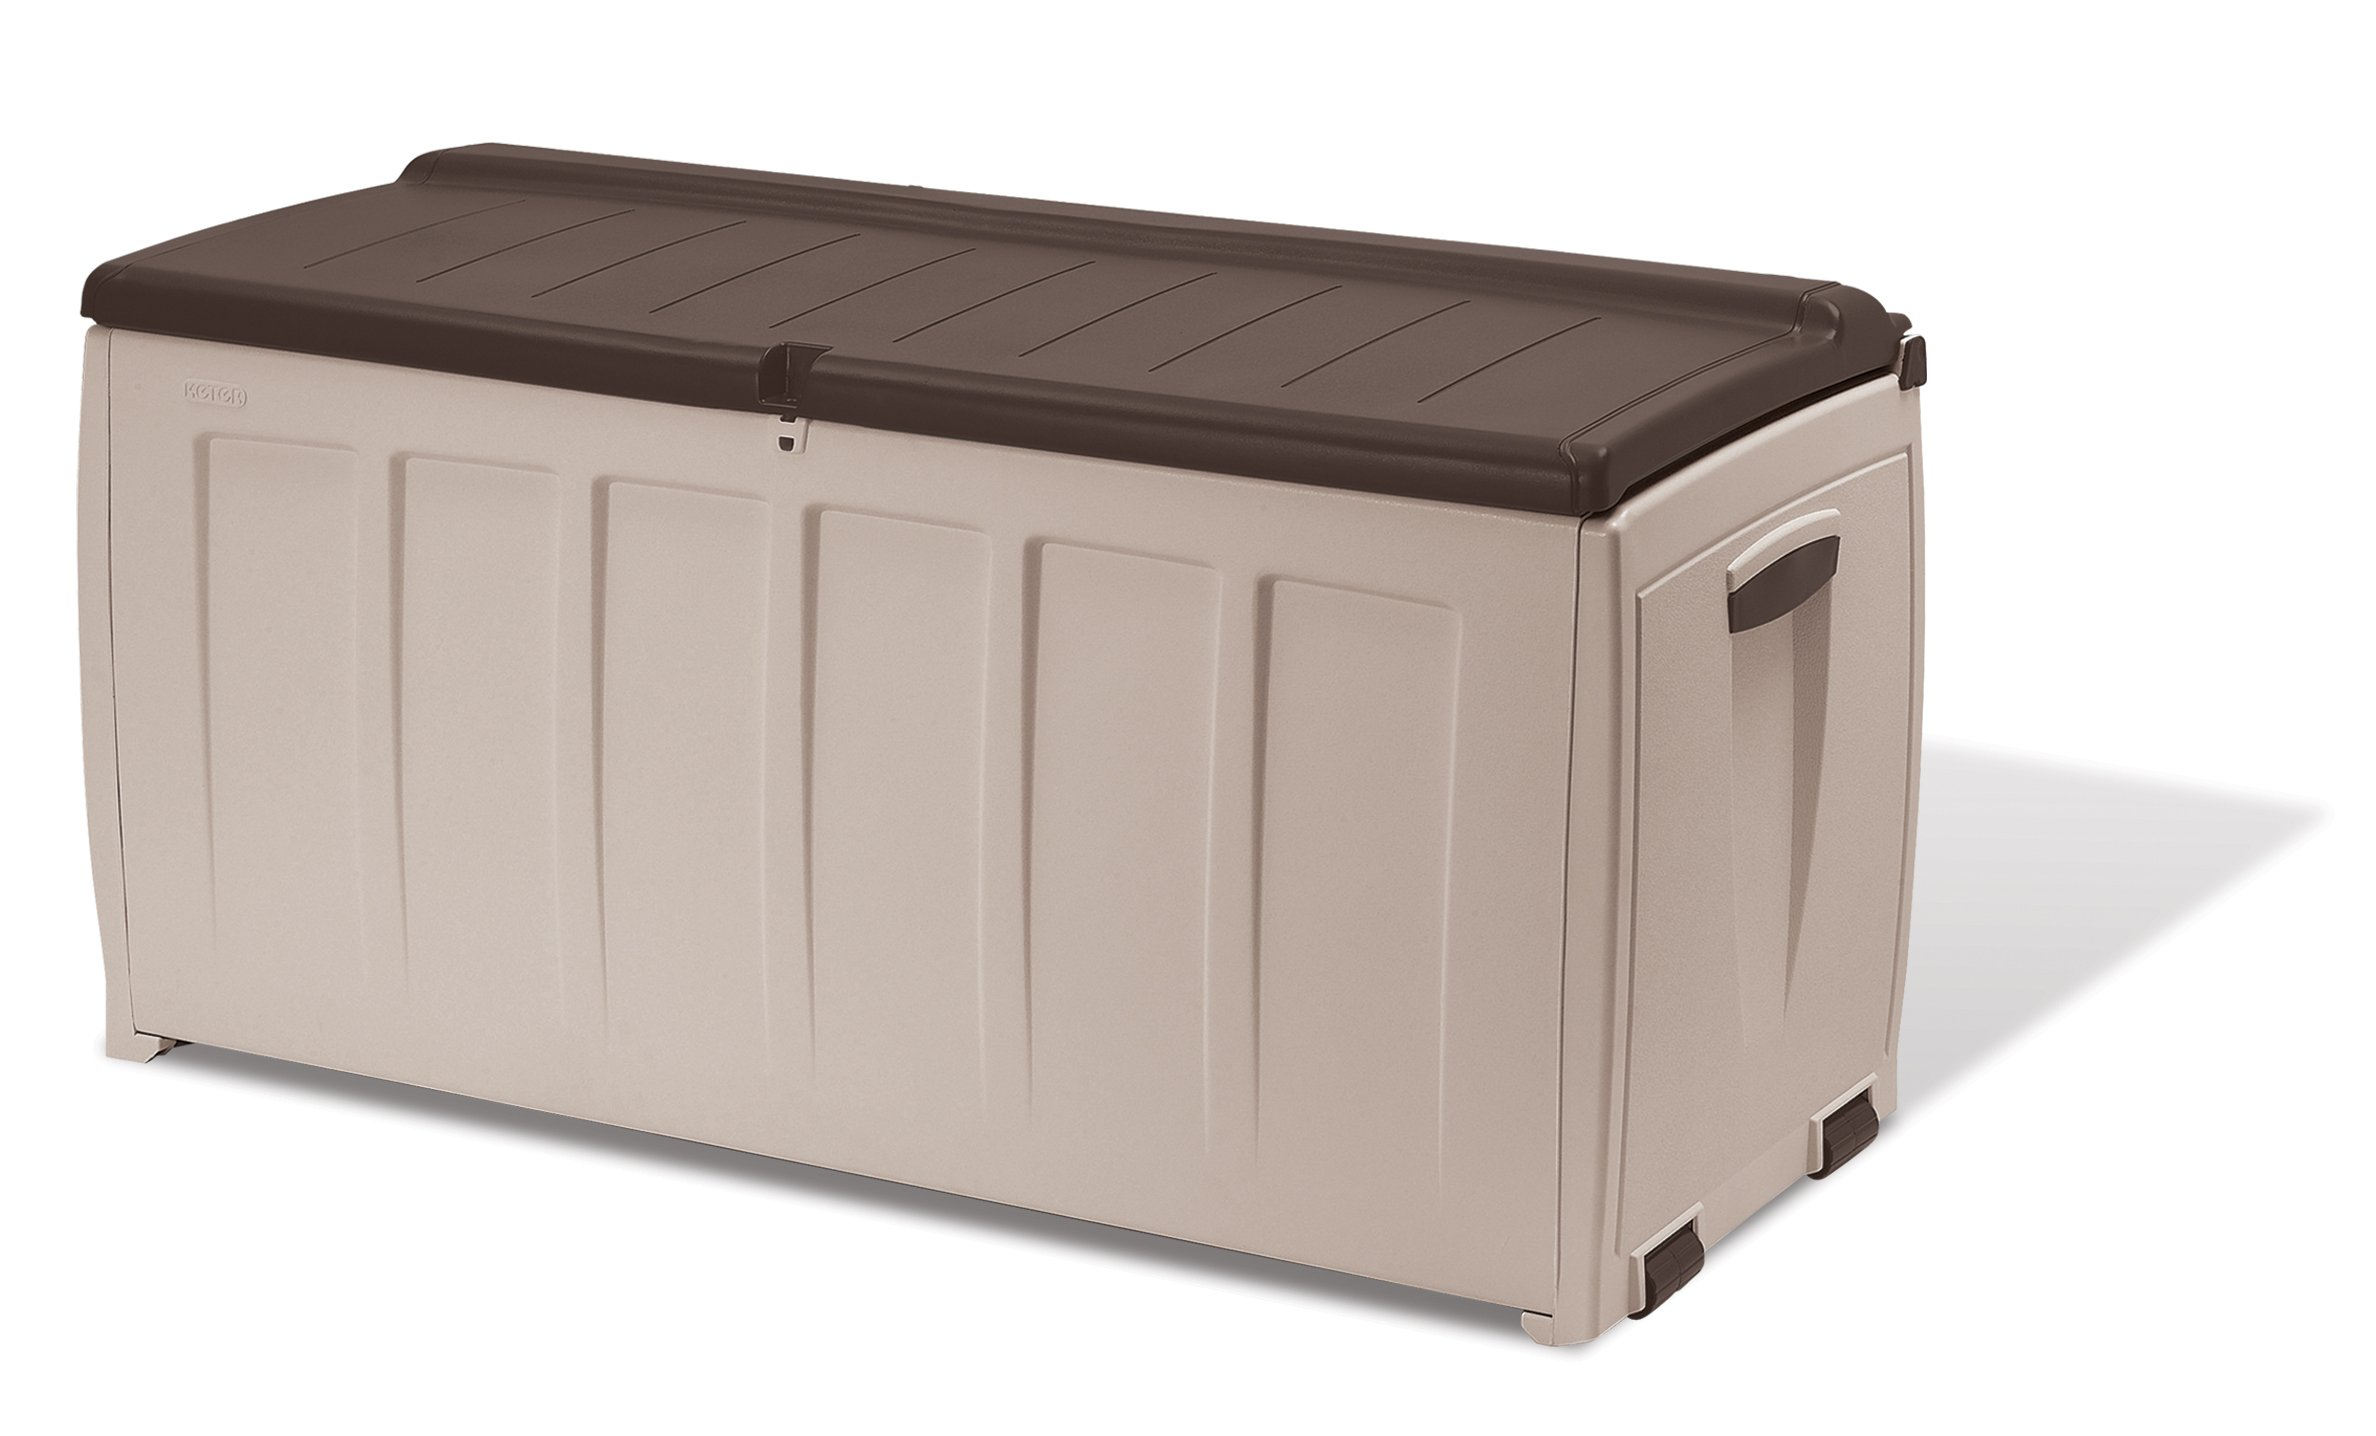 Keter Storage Box - Arcón, Color Beige: Amazon.es: Jardín